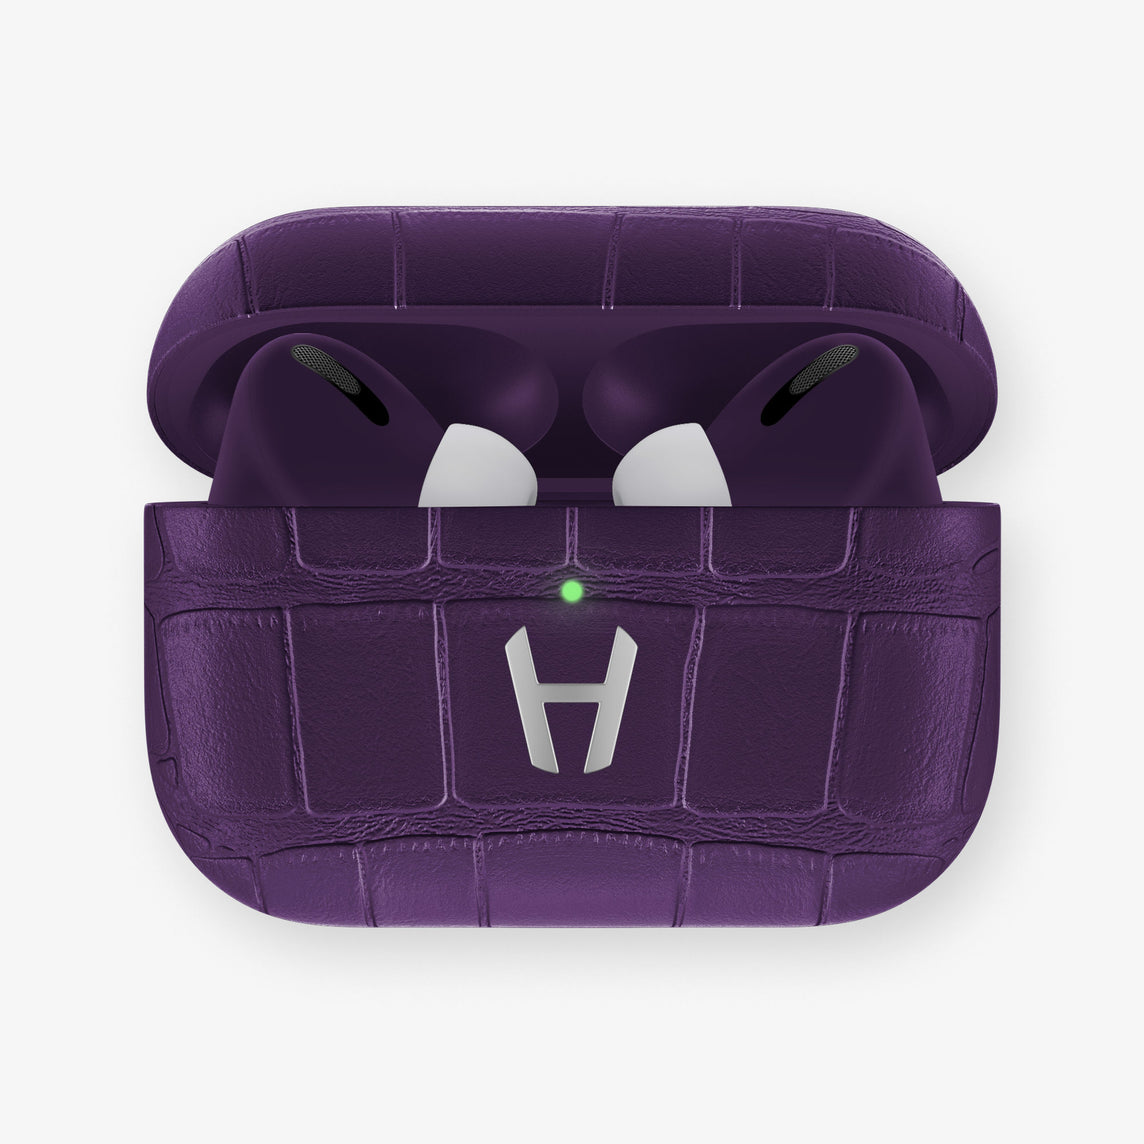 AirPods Pro Alligator AirPods Pro | Violet Purple - Stainless Steel